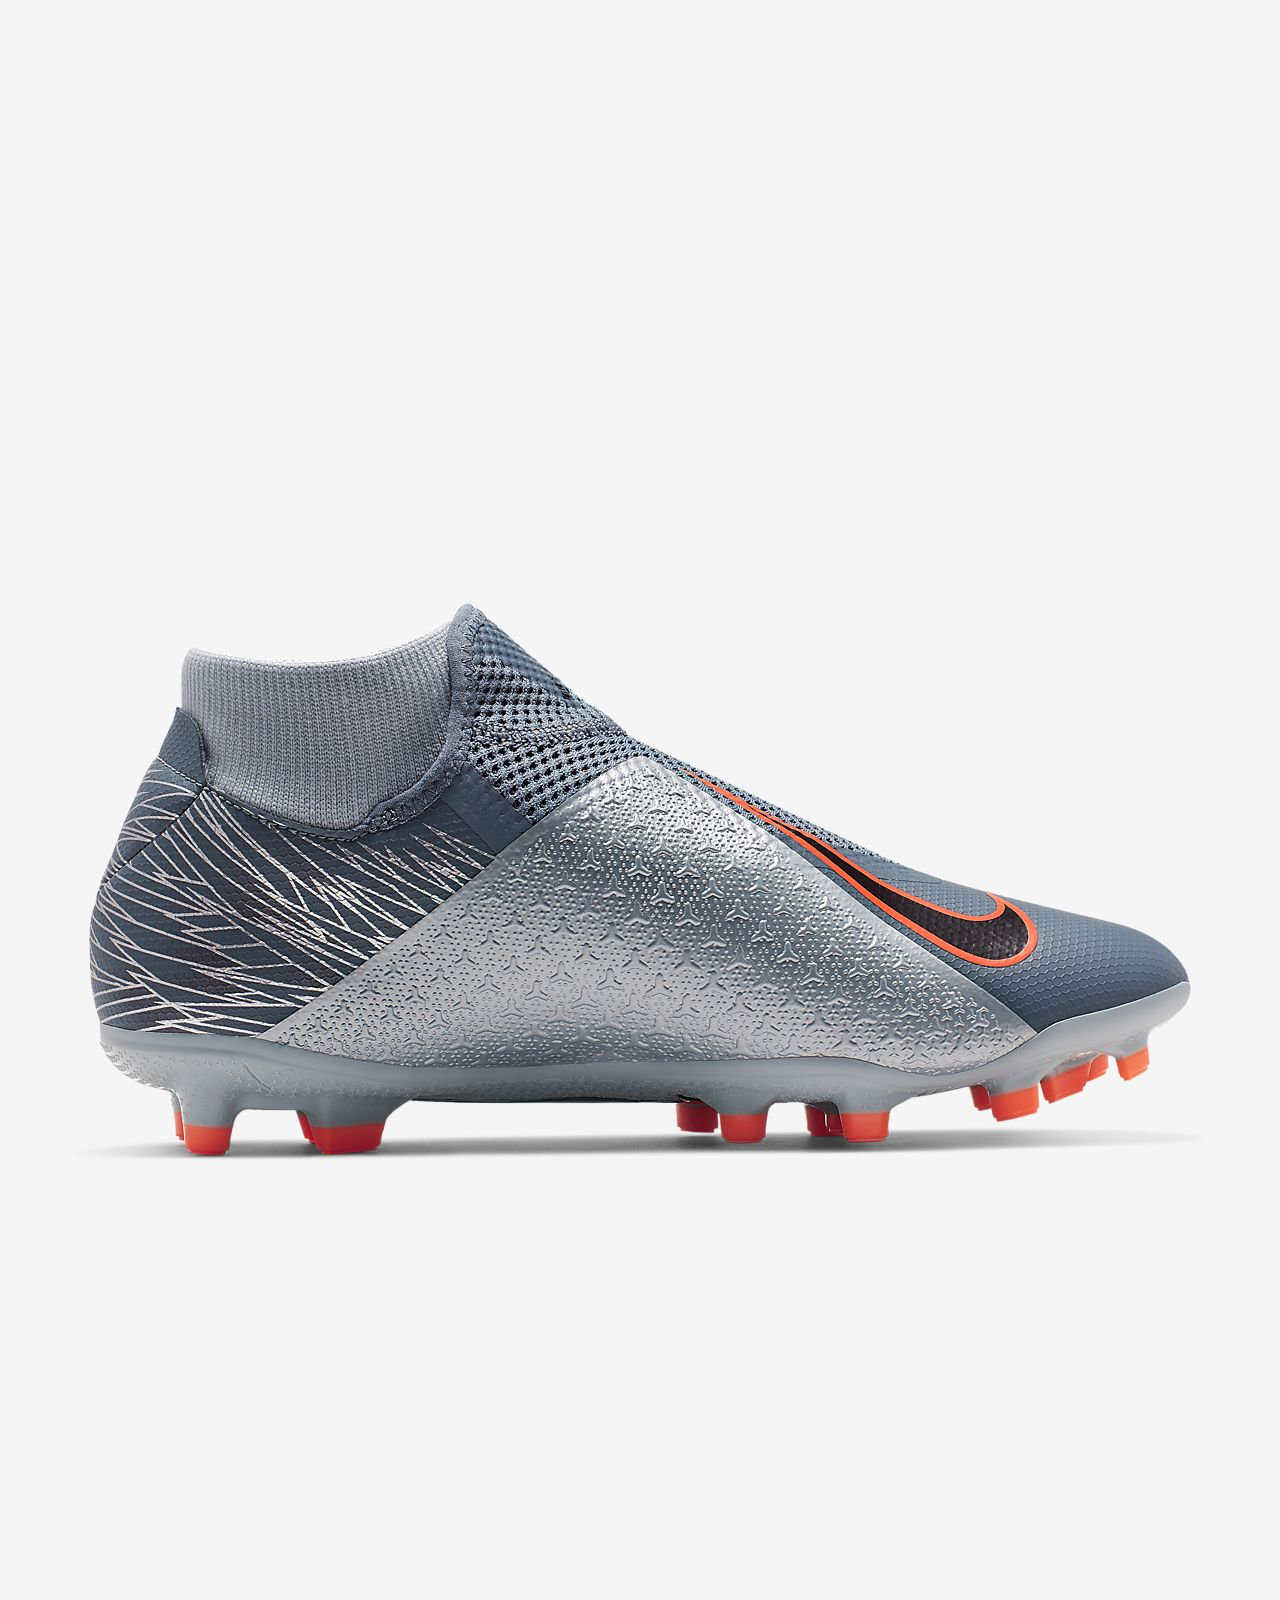 brand new b5443 d7d05 ... Nike Phantom Vision Academy Dynamic Fit MG Multi-Ground Football Boot